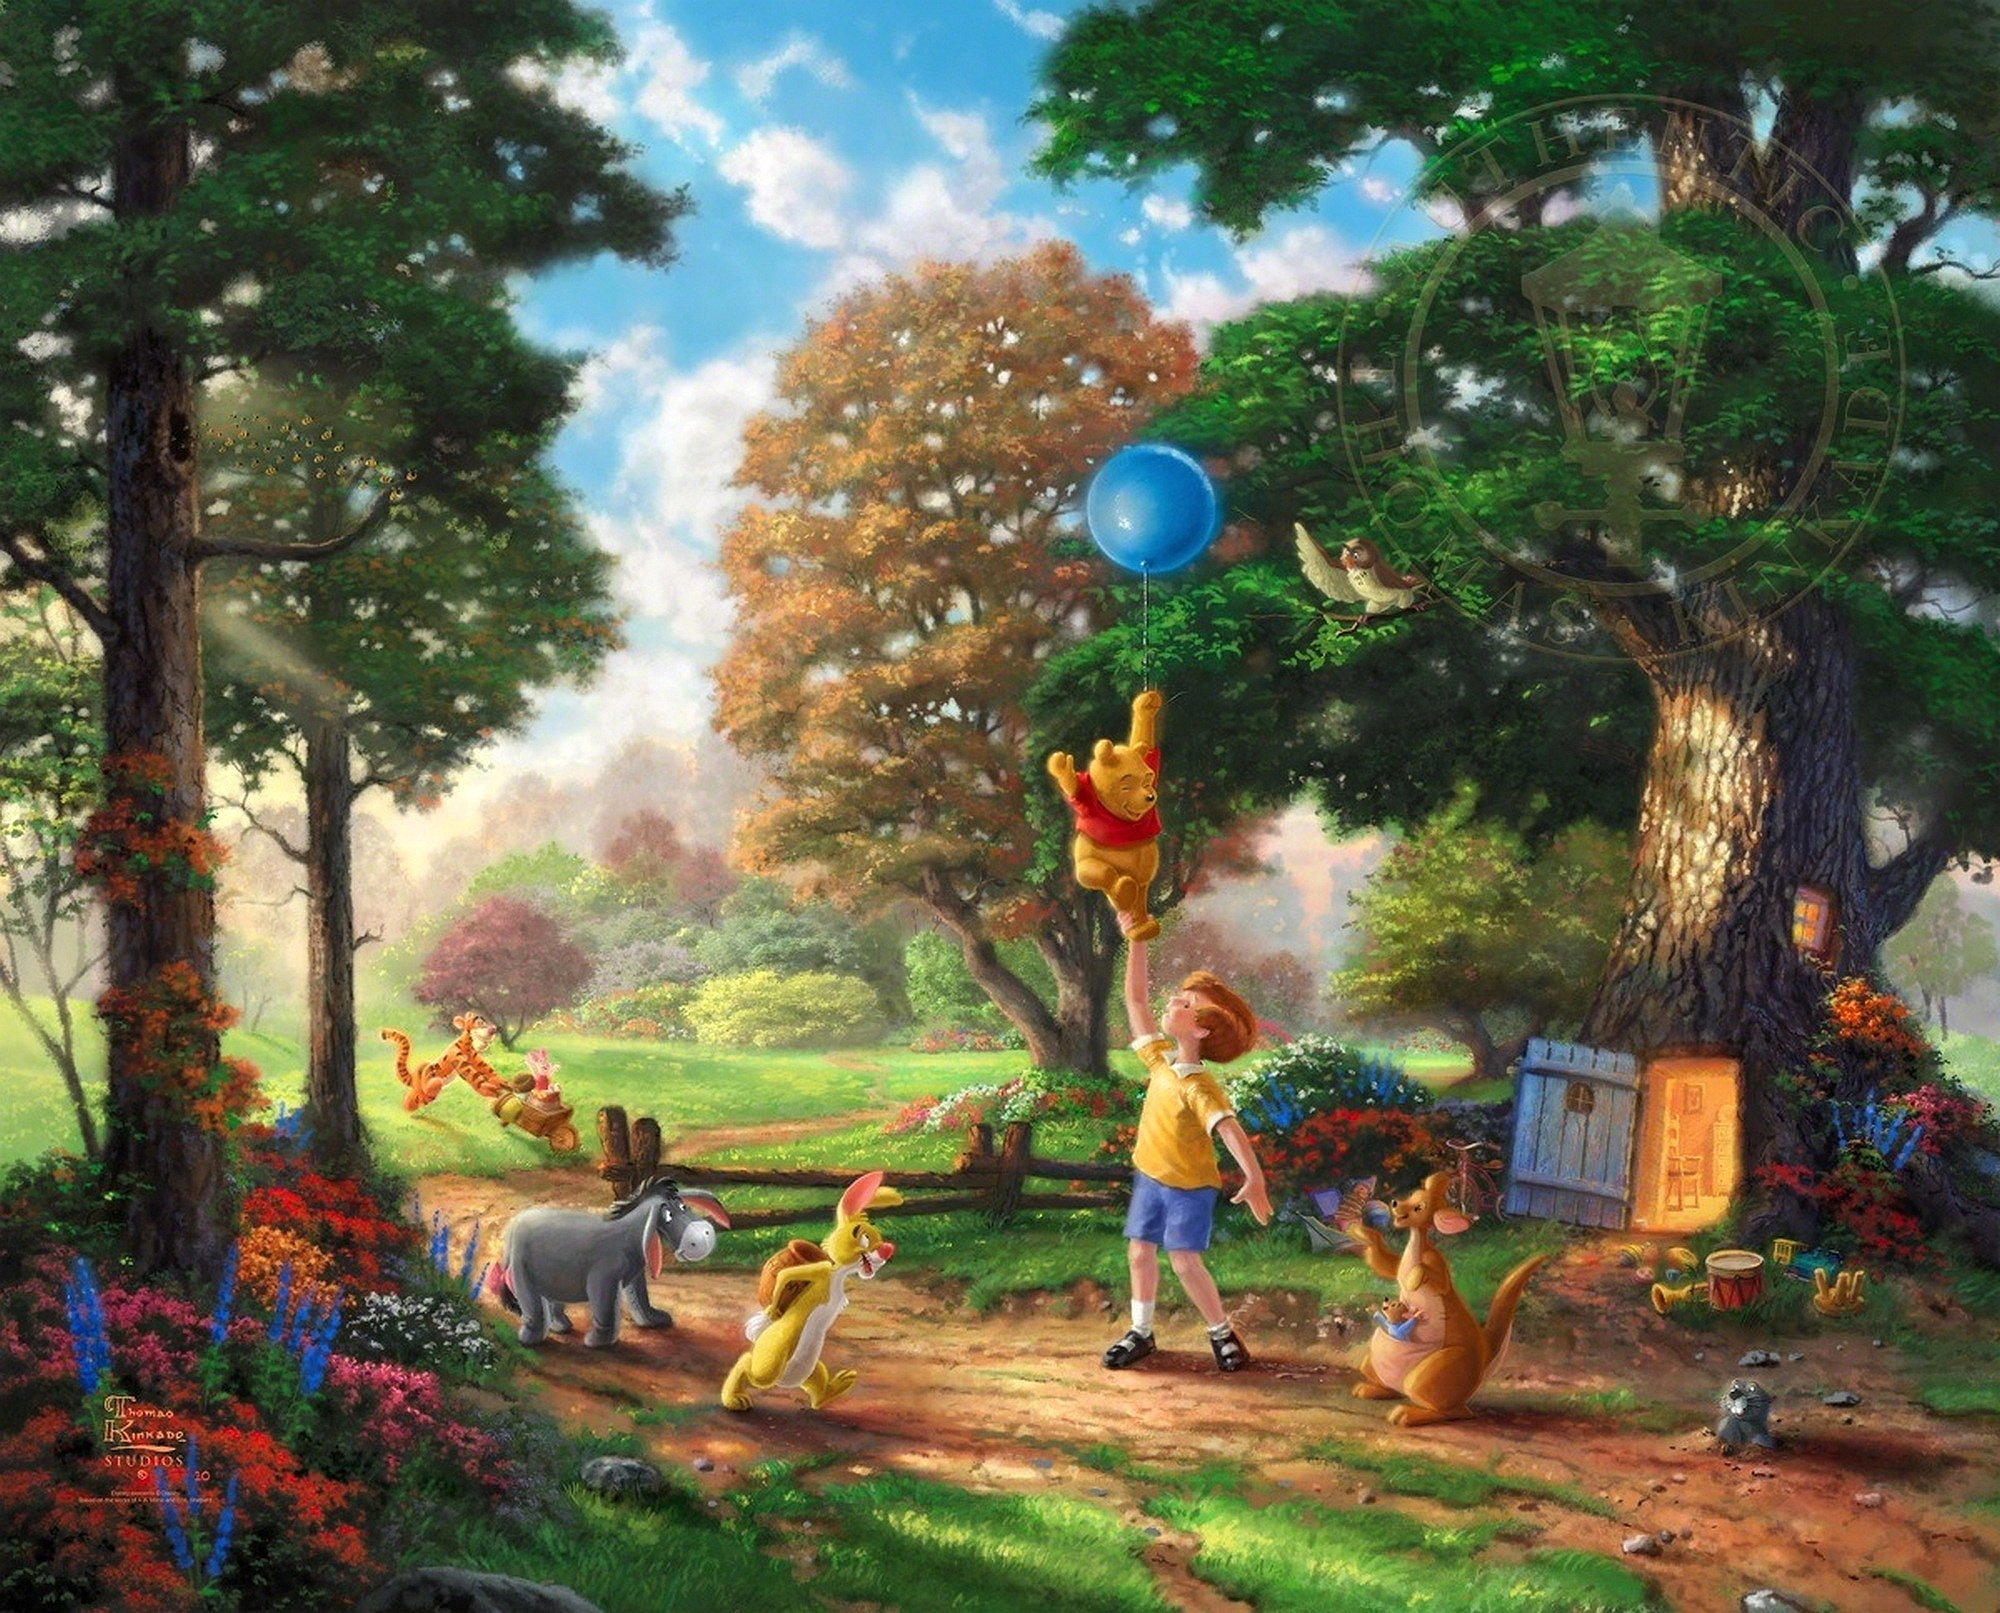 Winnie pooh thomas kinkade family disney fantasy wallpaper ...